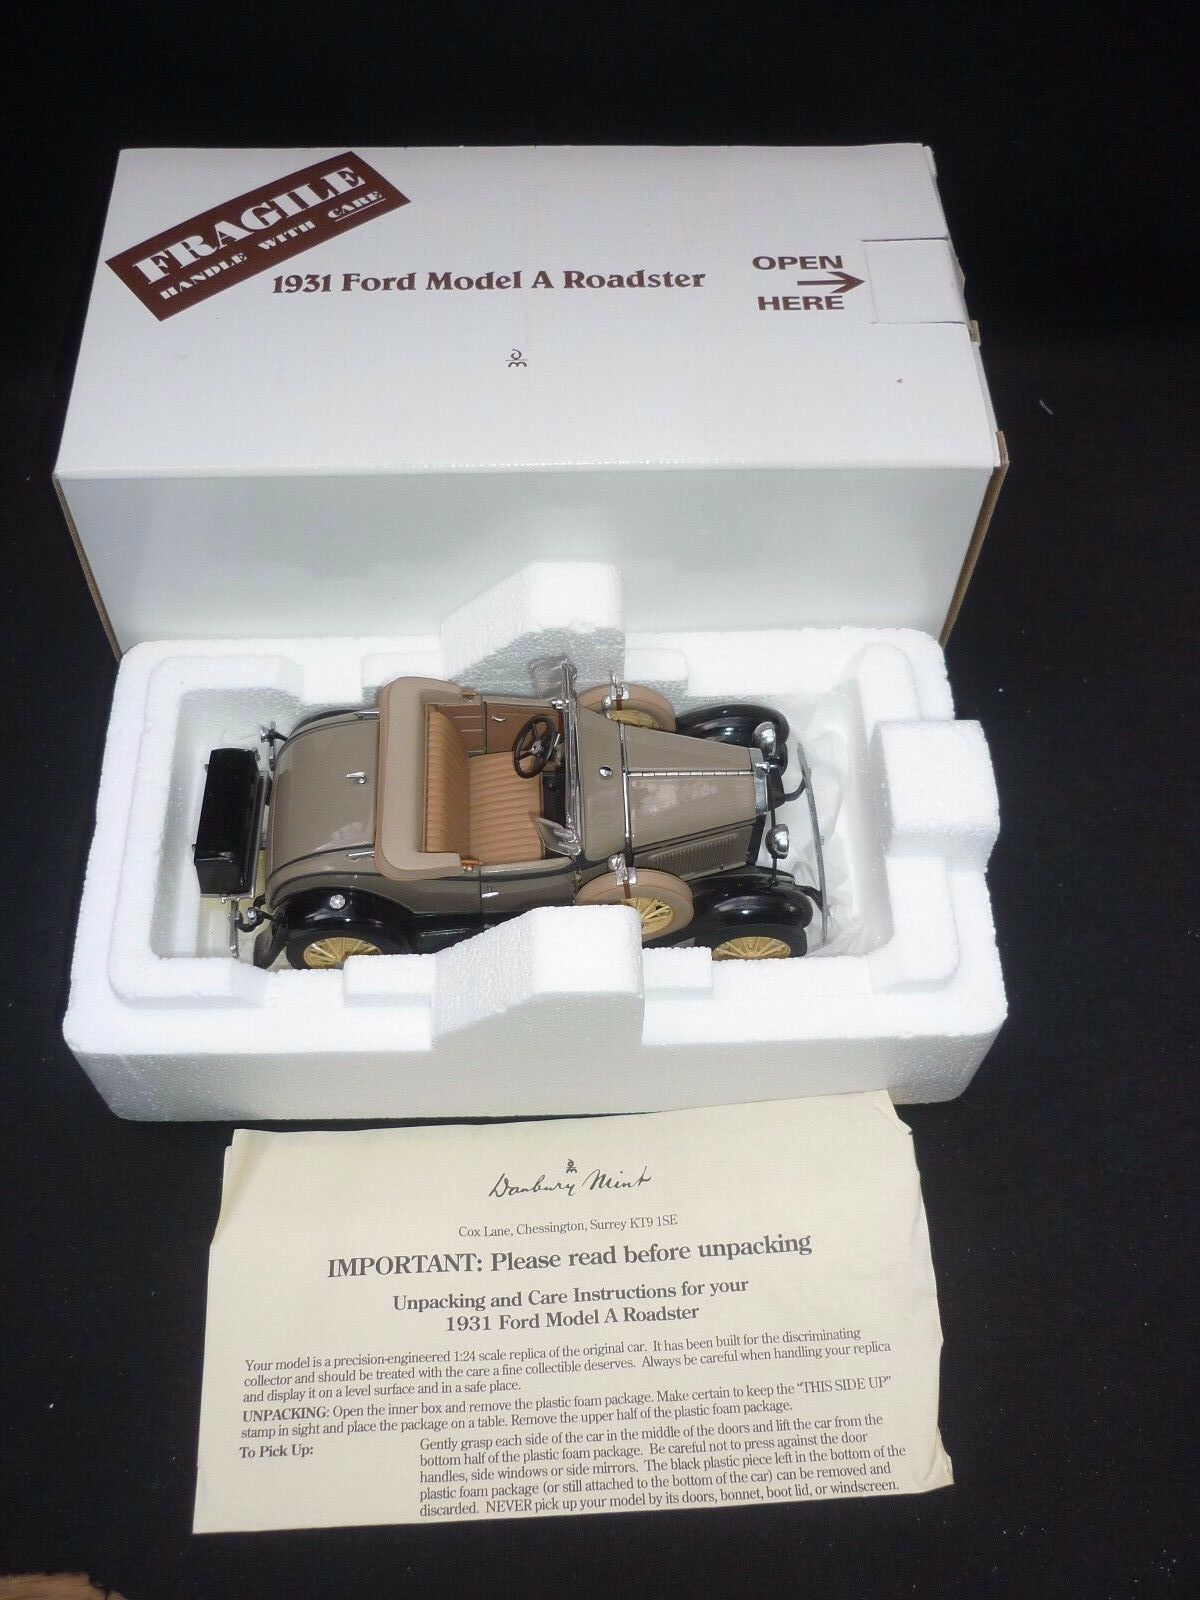 A Danbury mint scale model of a 1931 Ford model A Roadster,  boxed